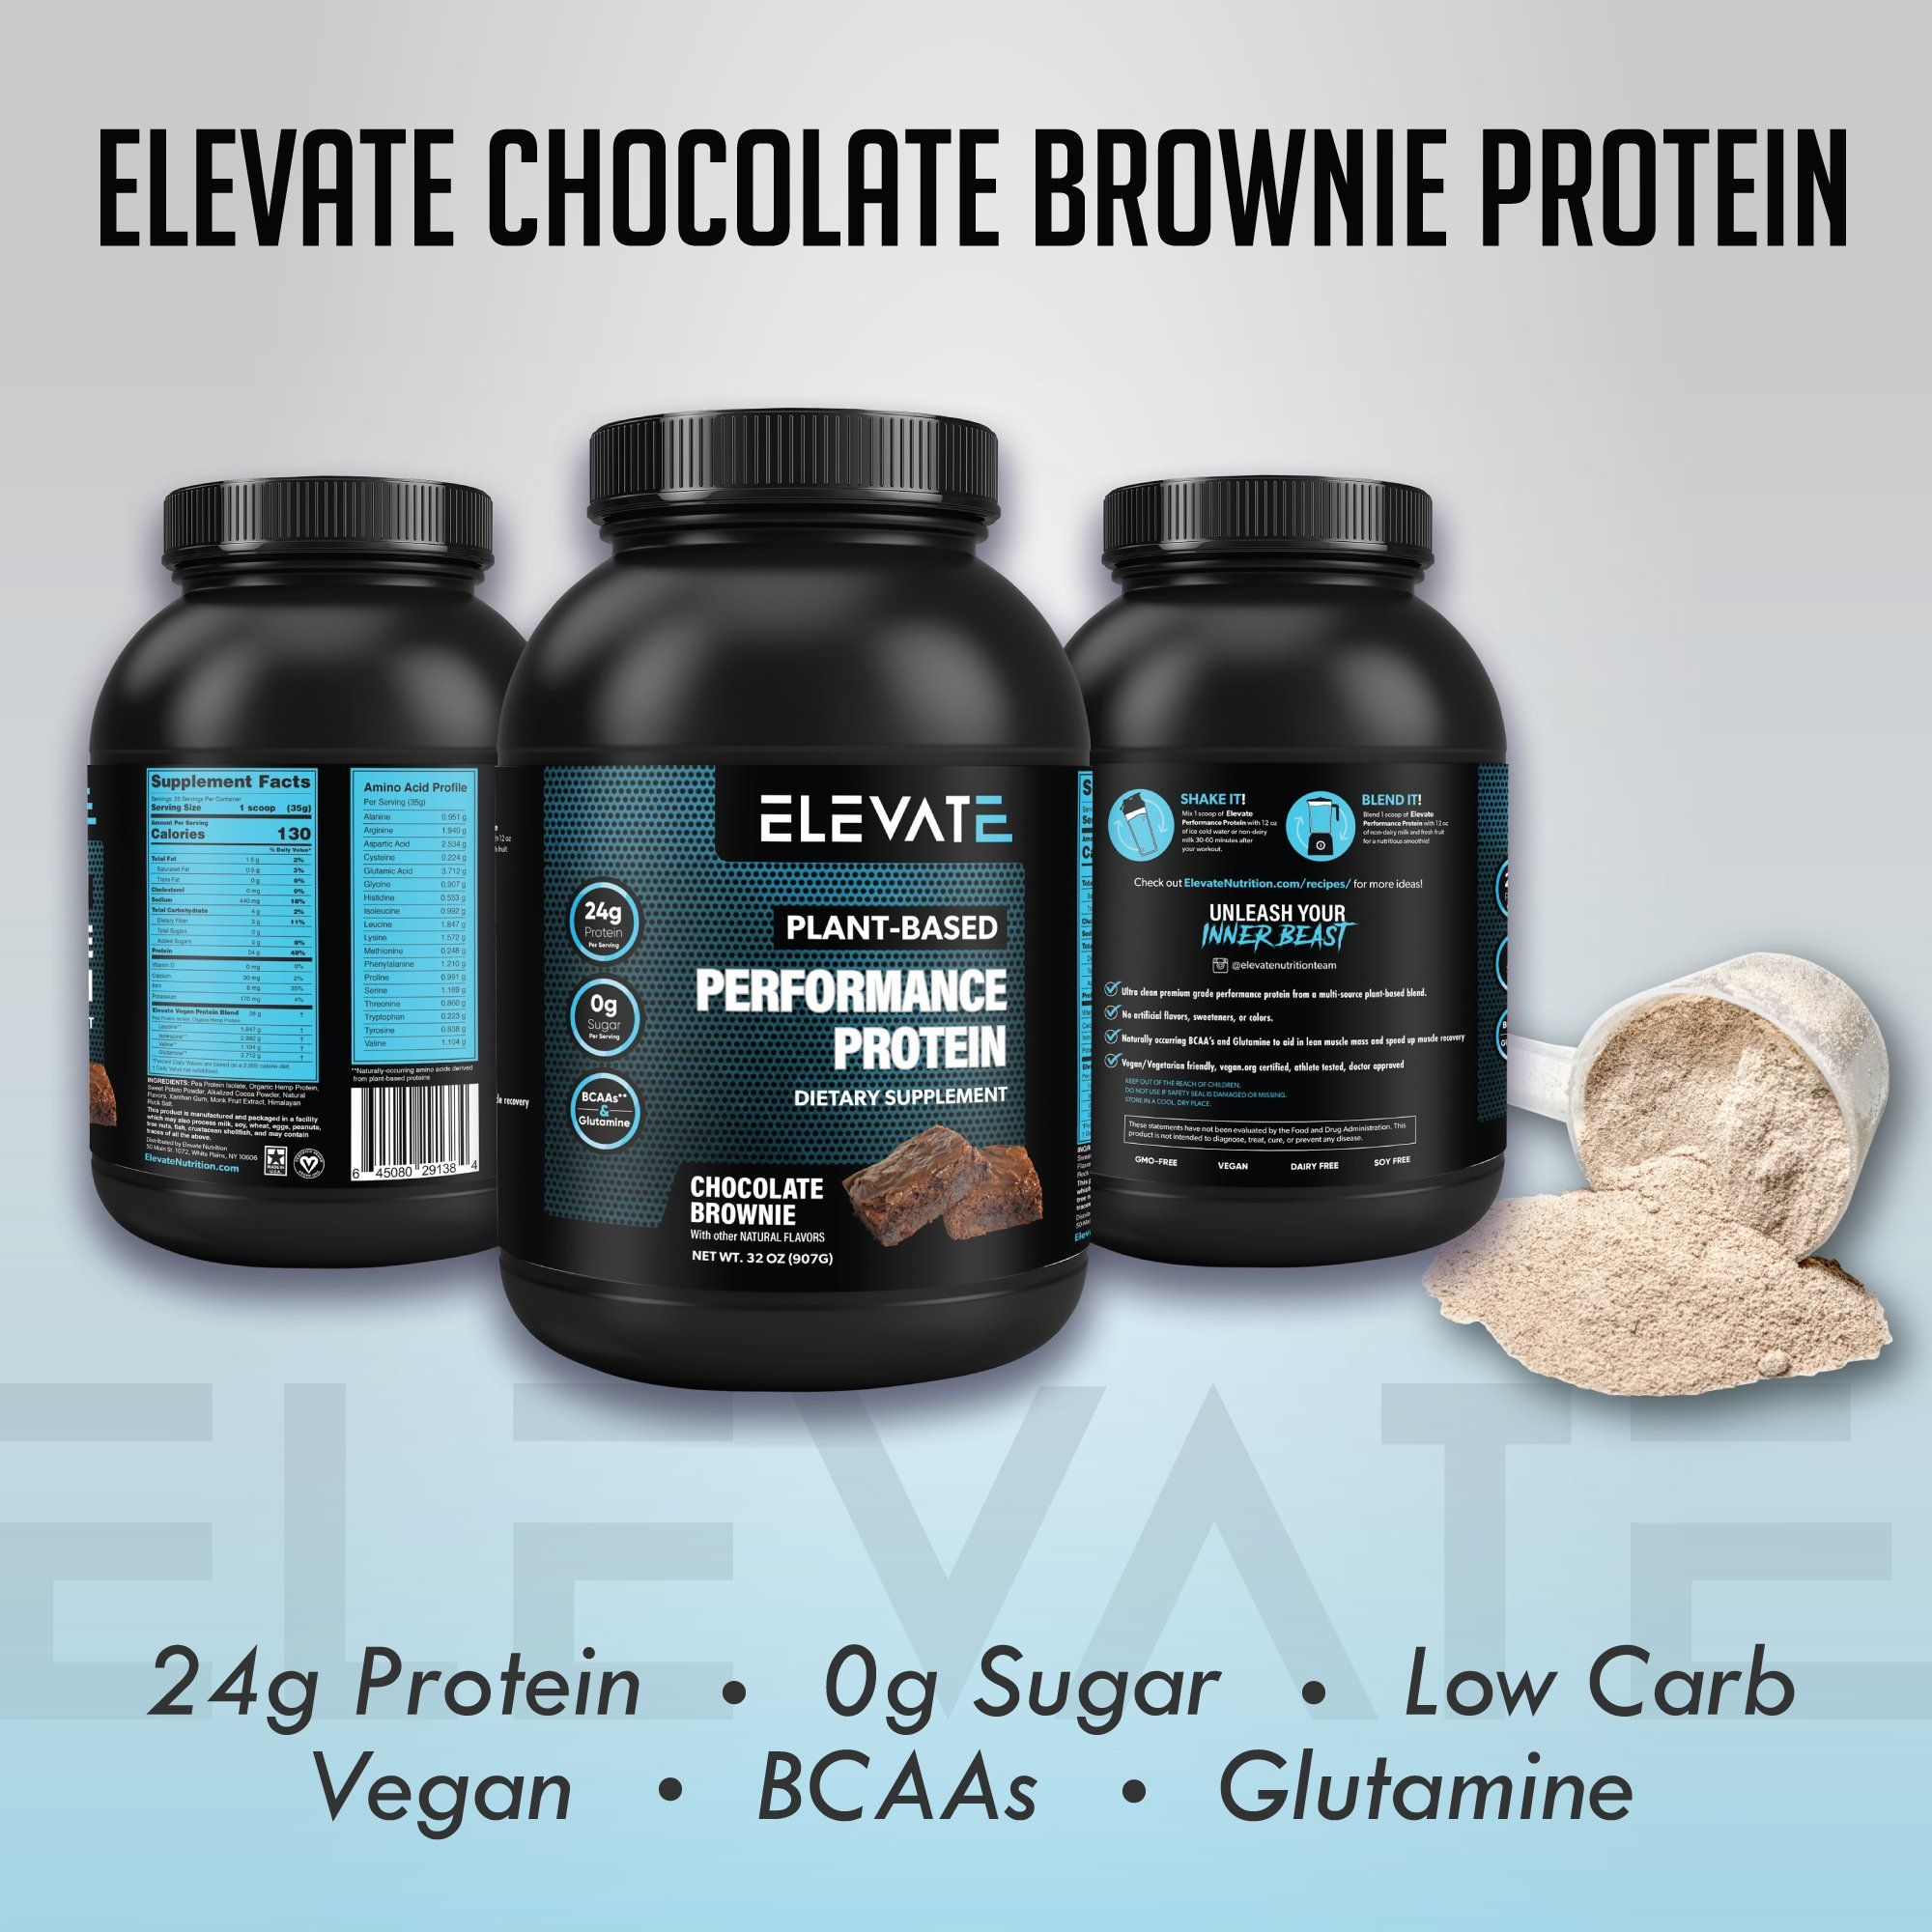 The Best Low Carb Vegan Protein Powders Meat Free Keto Vegan Keto Recipes In 2020 Vegan Protein Powder Low Carb Vegan Vegan Keto Recipes